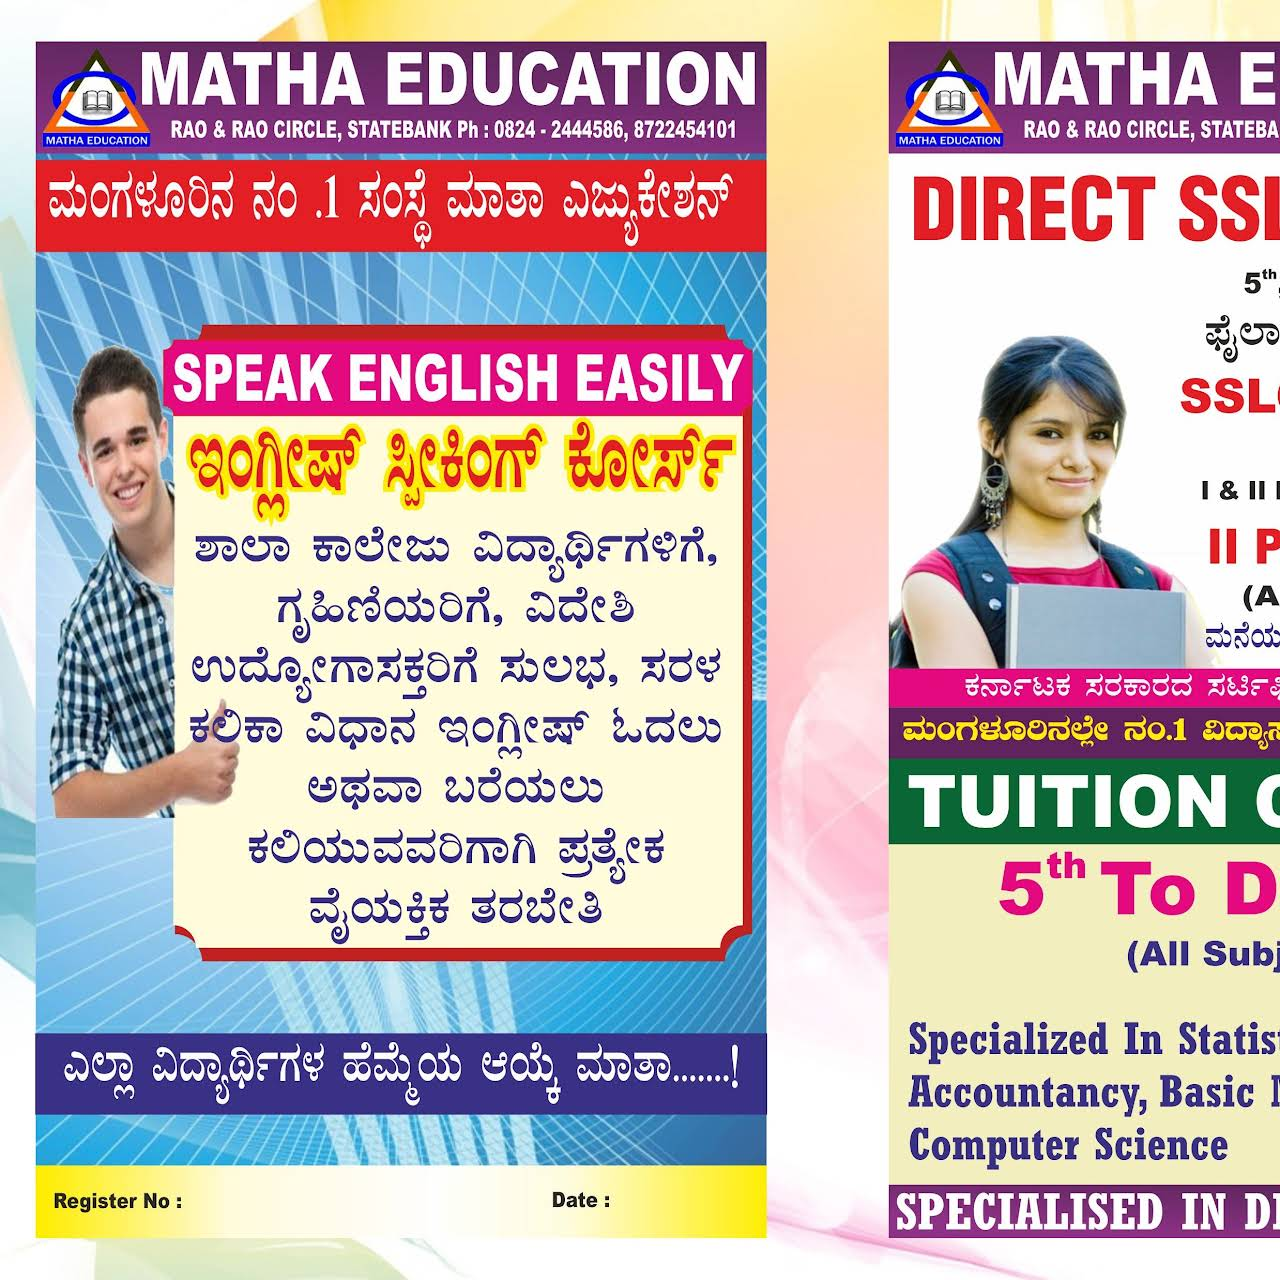 Matha Education State bank - 100% job oriented courses